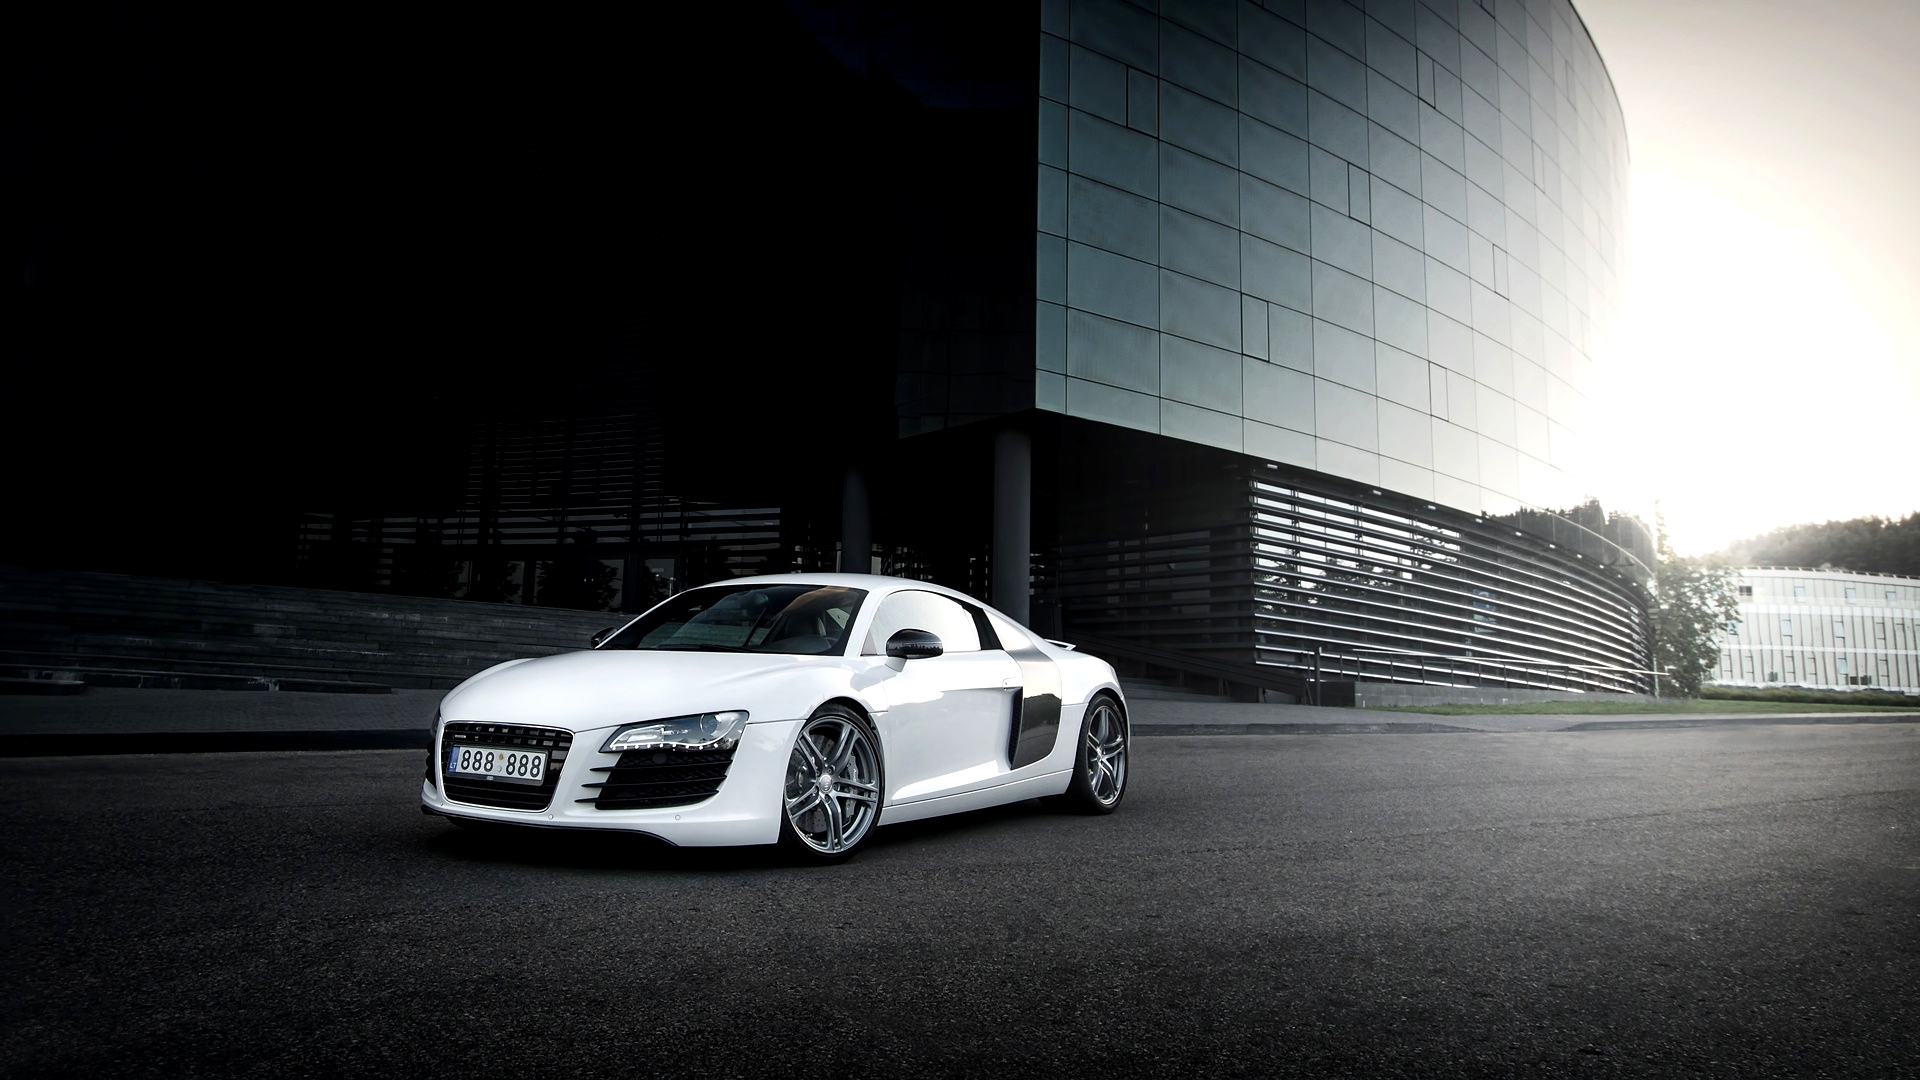 Audi R8 Wallpaper HD 49367